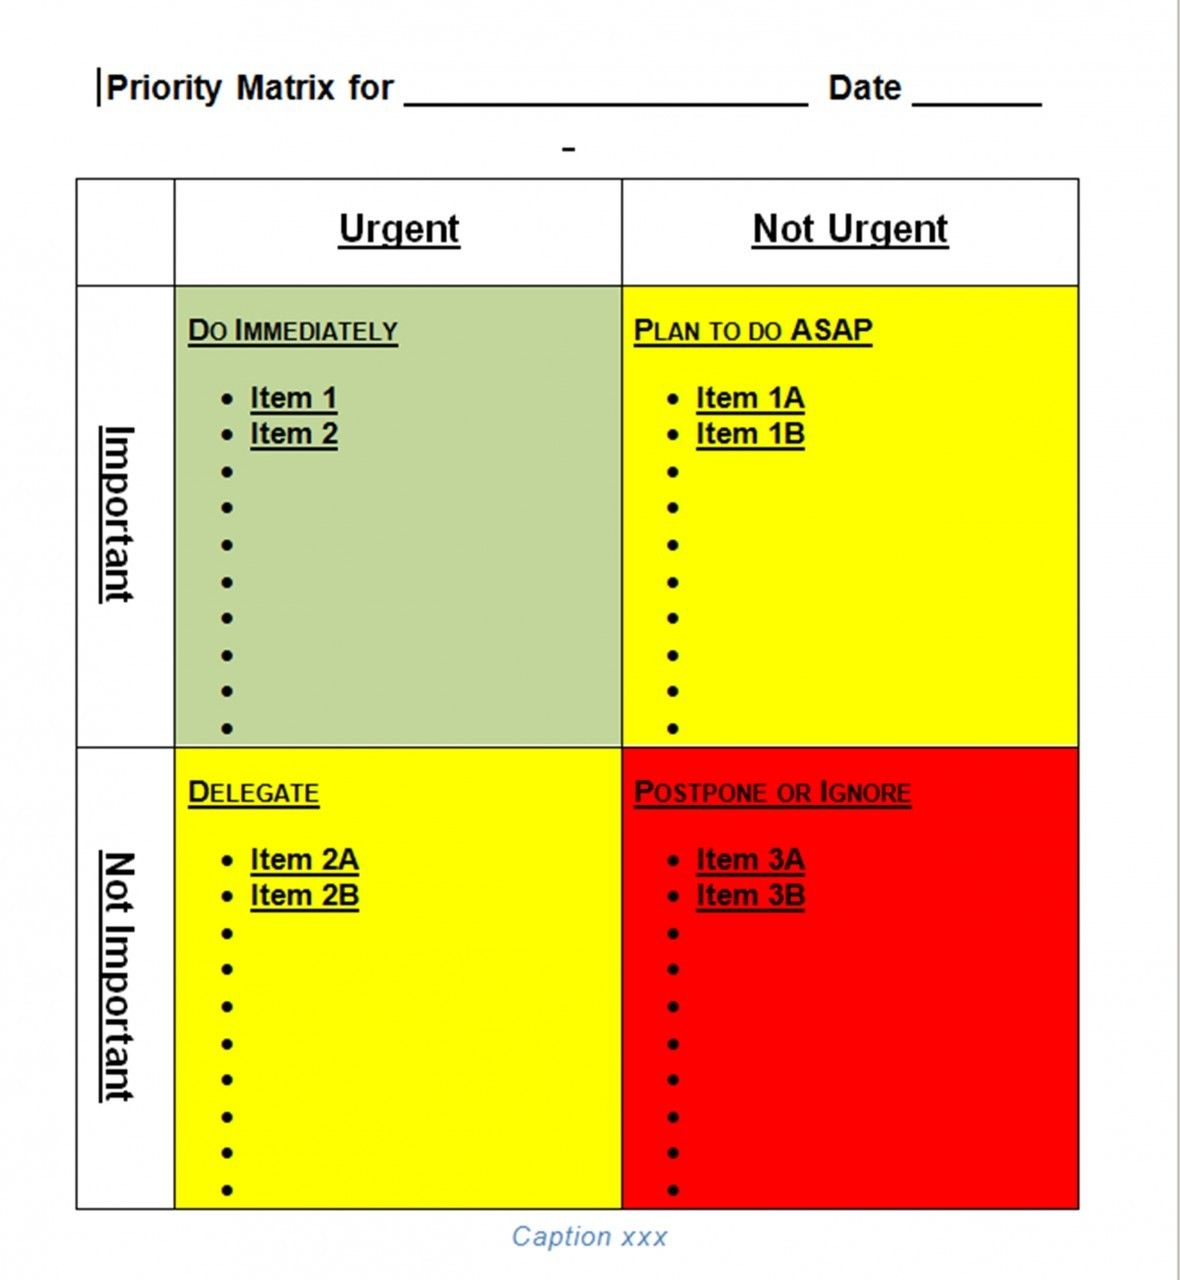 Priority Matrix Template for Word | Tool store, Priorities and Template